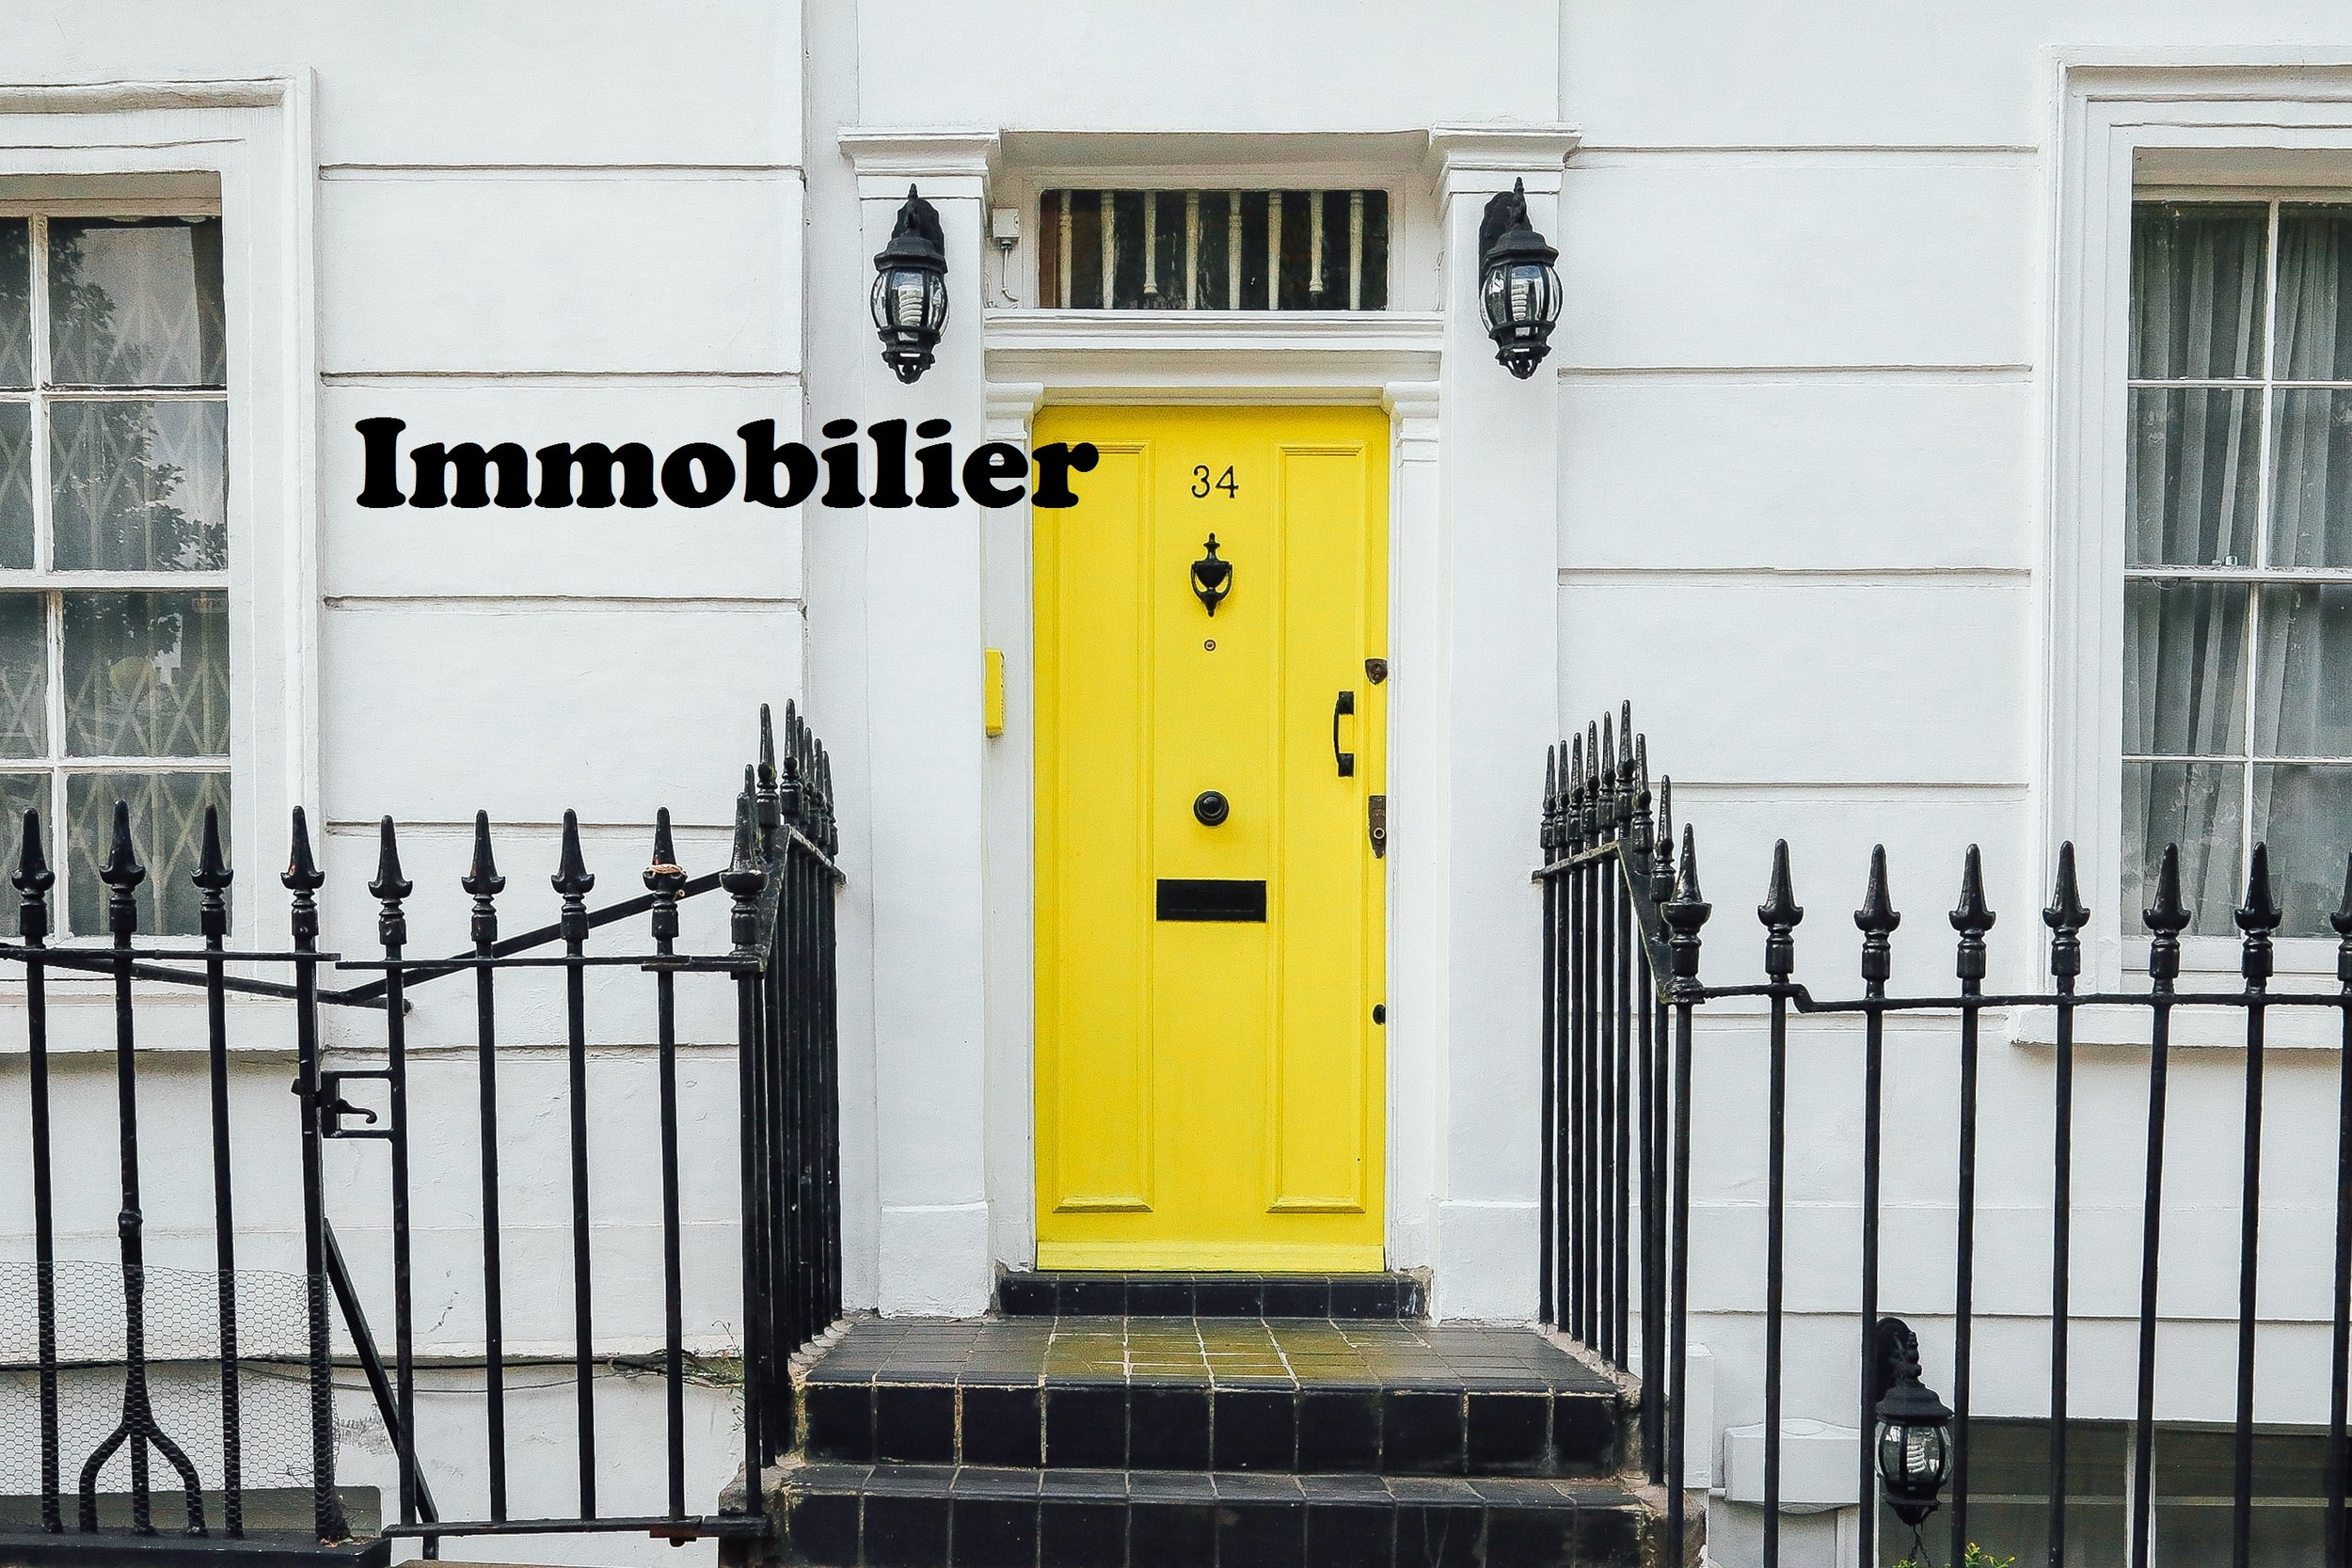 immobilier site.jpg